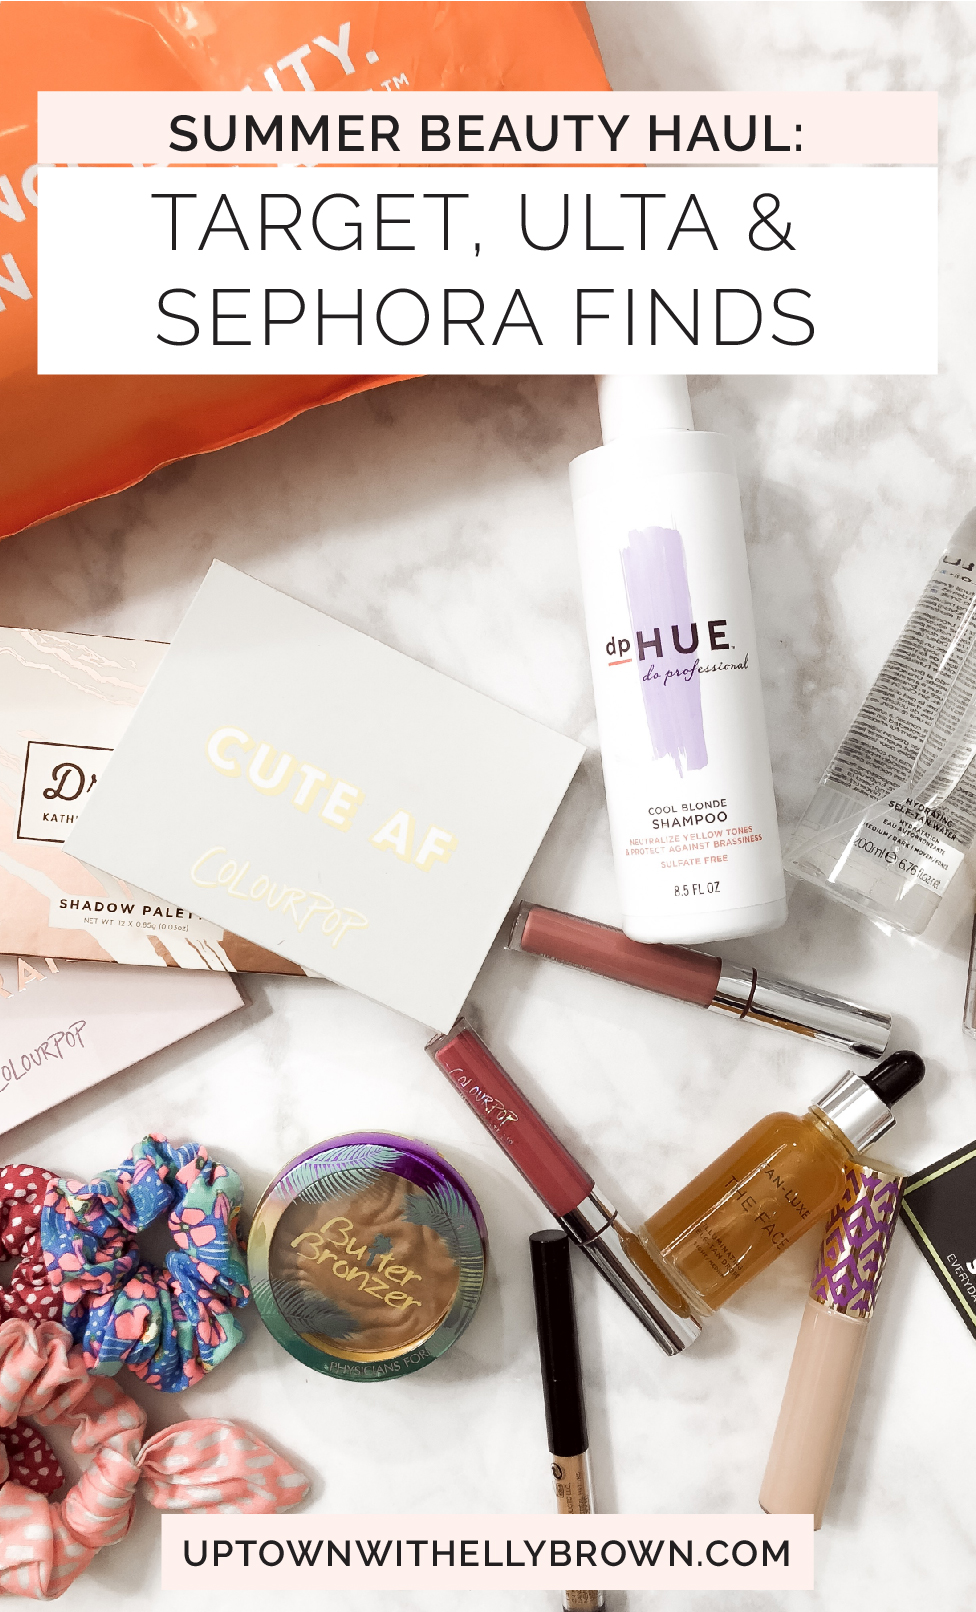 Houston Beauty blogger Uptown with Elly Brown shares her Summer Beauty Haul from Ulta, Target, and Sephora. Click here for more!